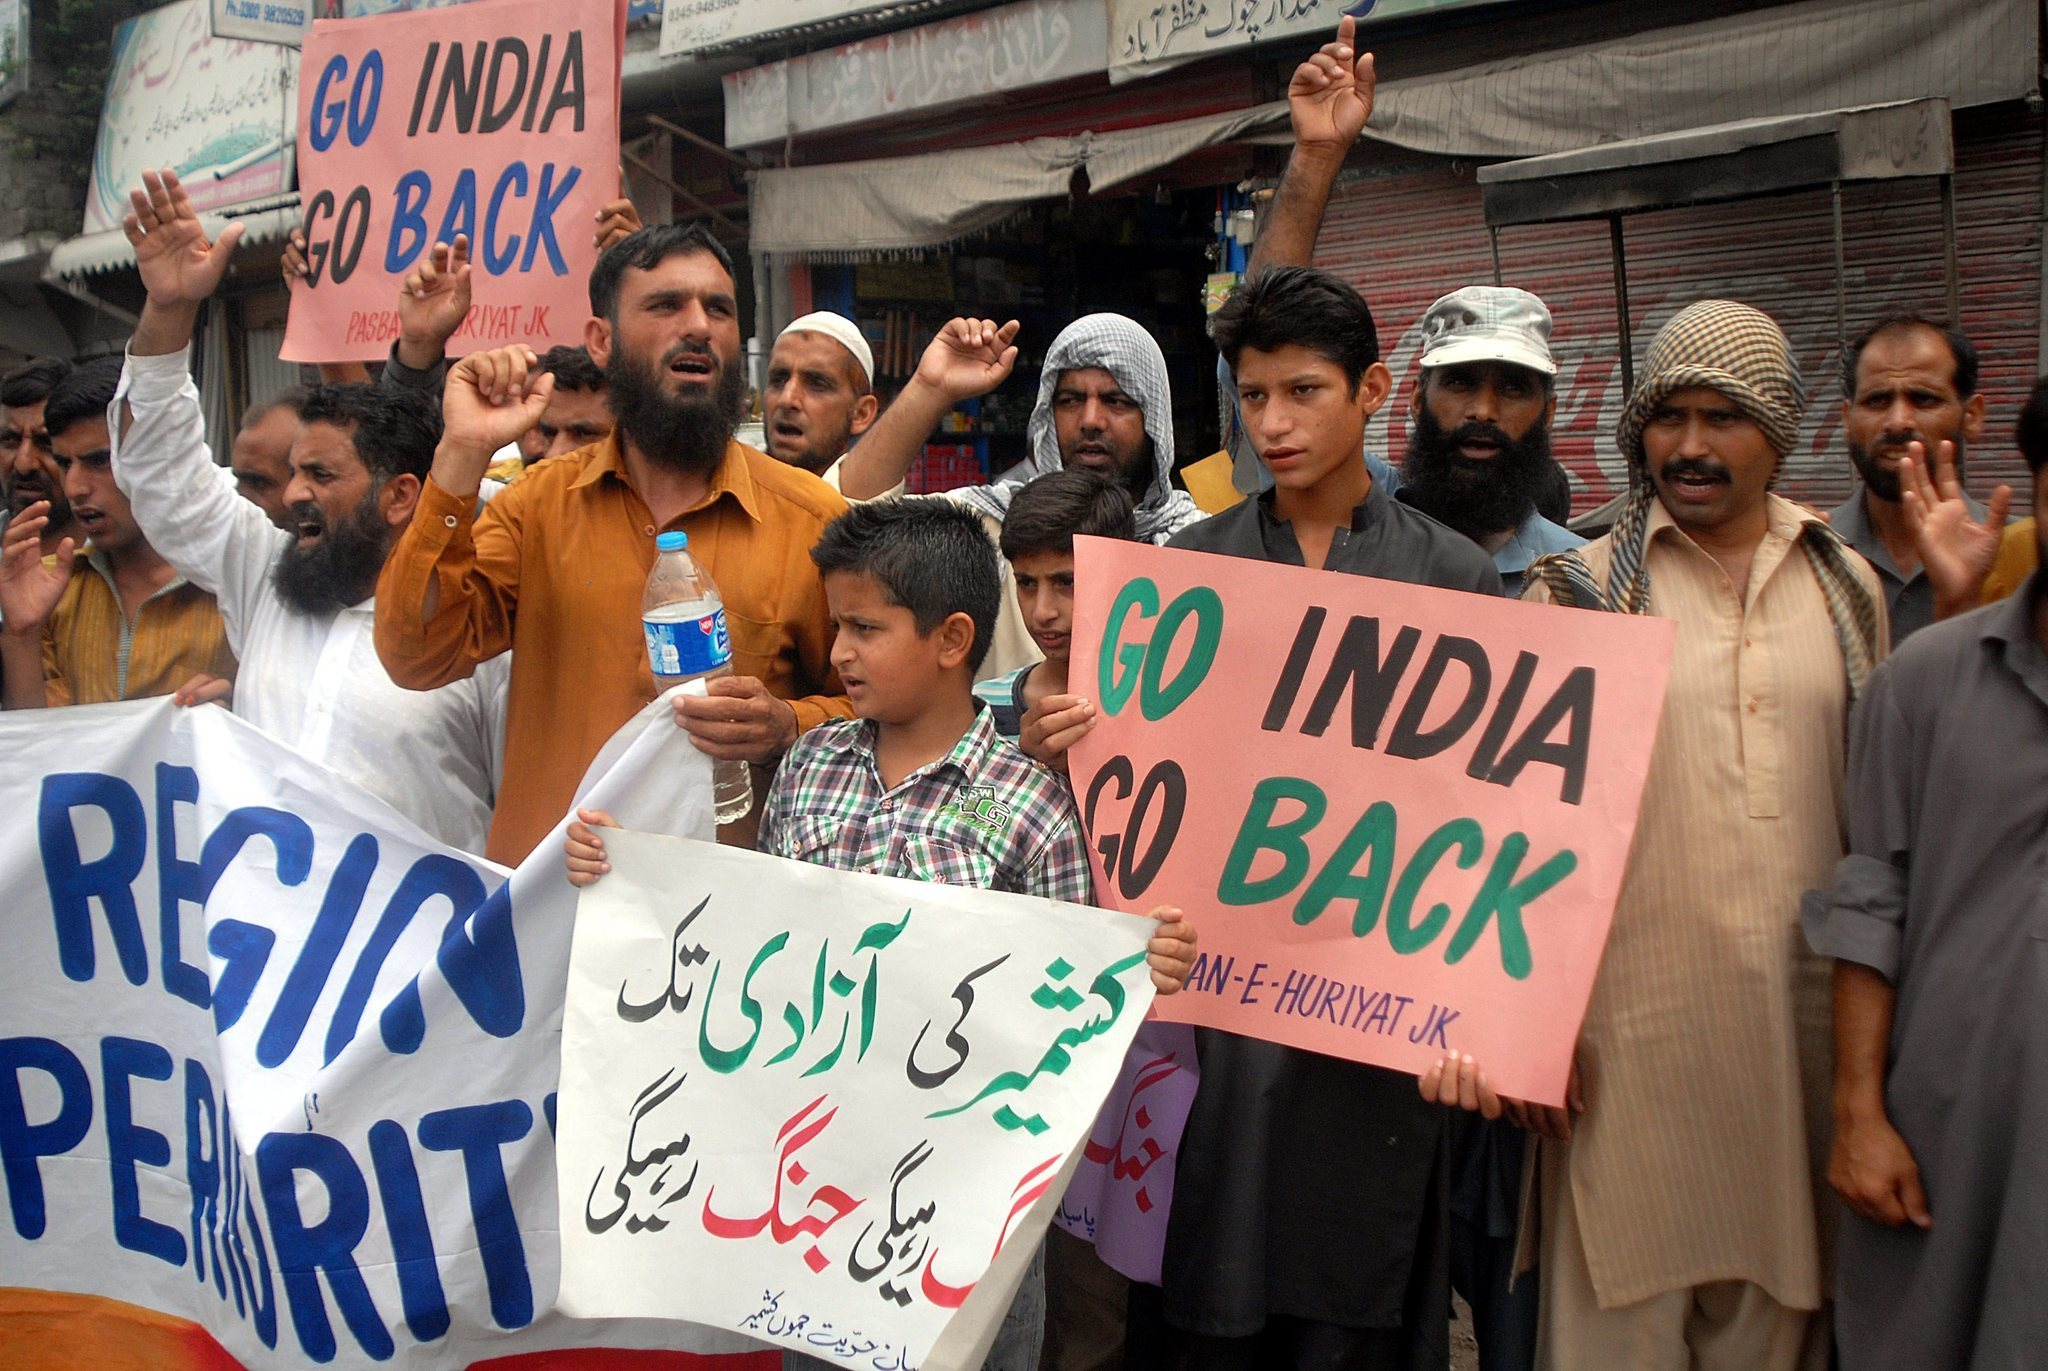 terrorism and india Cow vigilantism is pre-meditated, politically motivated, and seeks to build fear in a community that makes it terrorism.